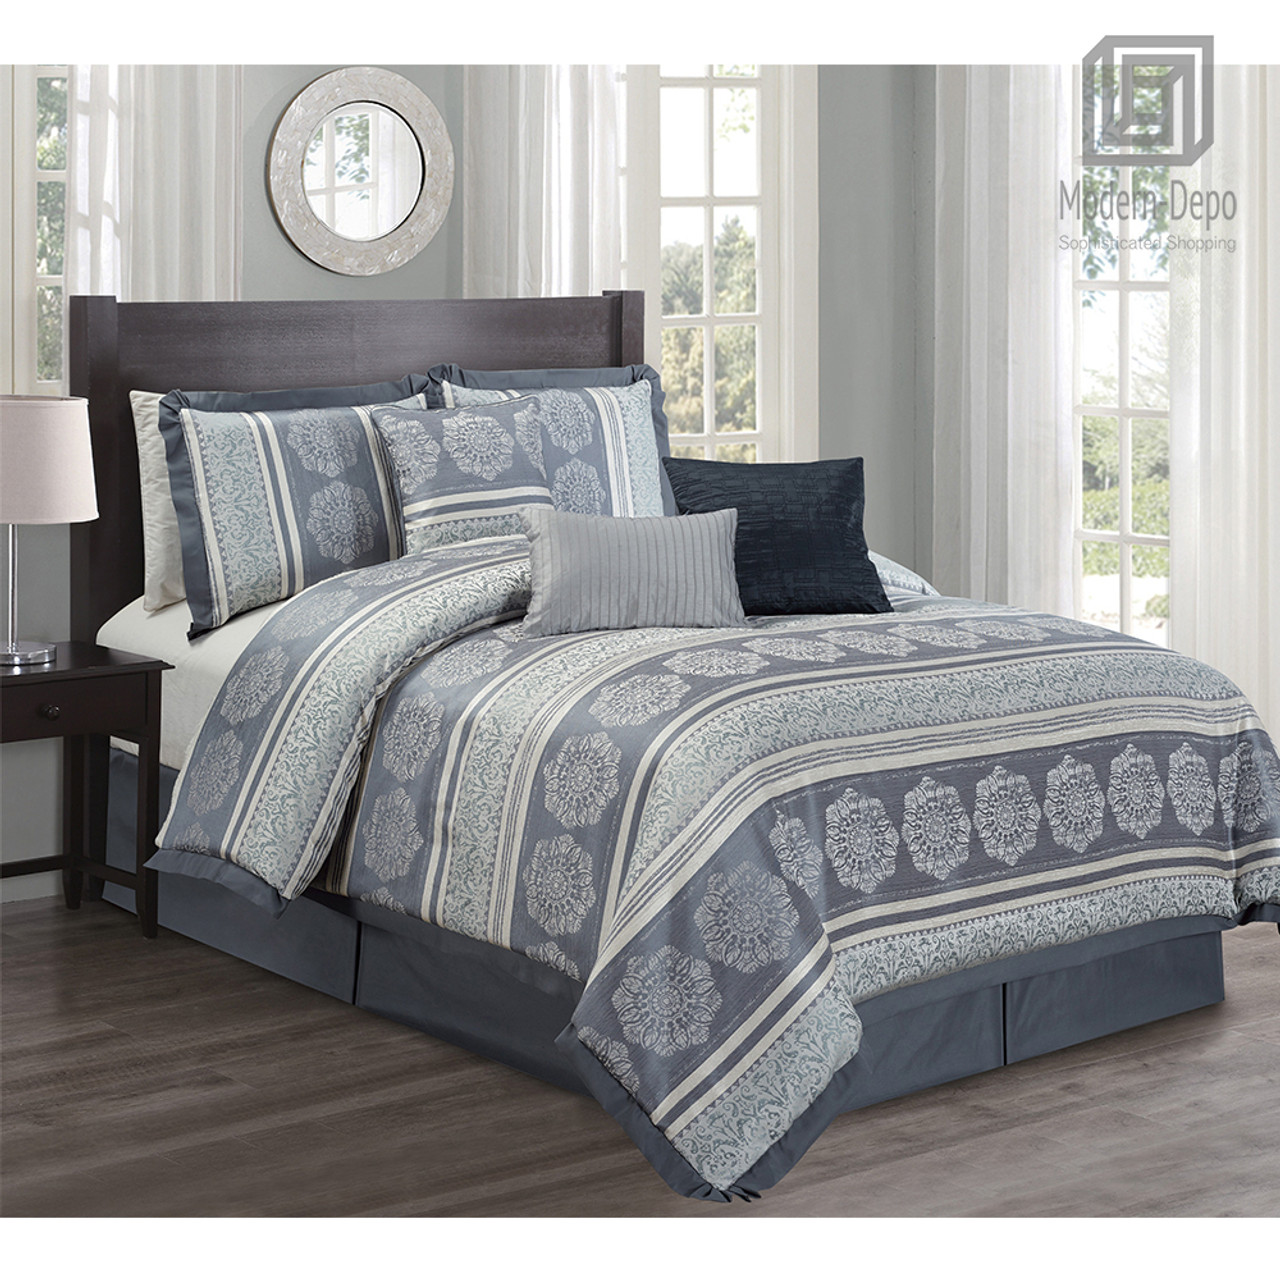 7 Piece Comforter Set King Size Microfiber Bed In A Bag Includes Comforter Bed Skirt Neckroll 2 Shams And 2 Pillows Modern Depo